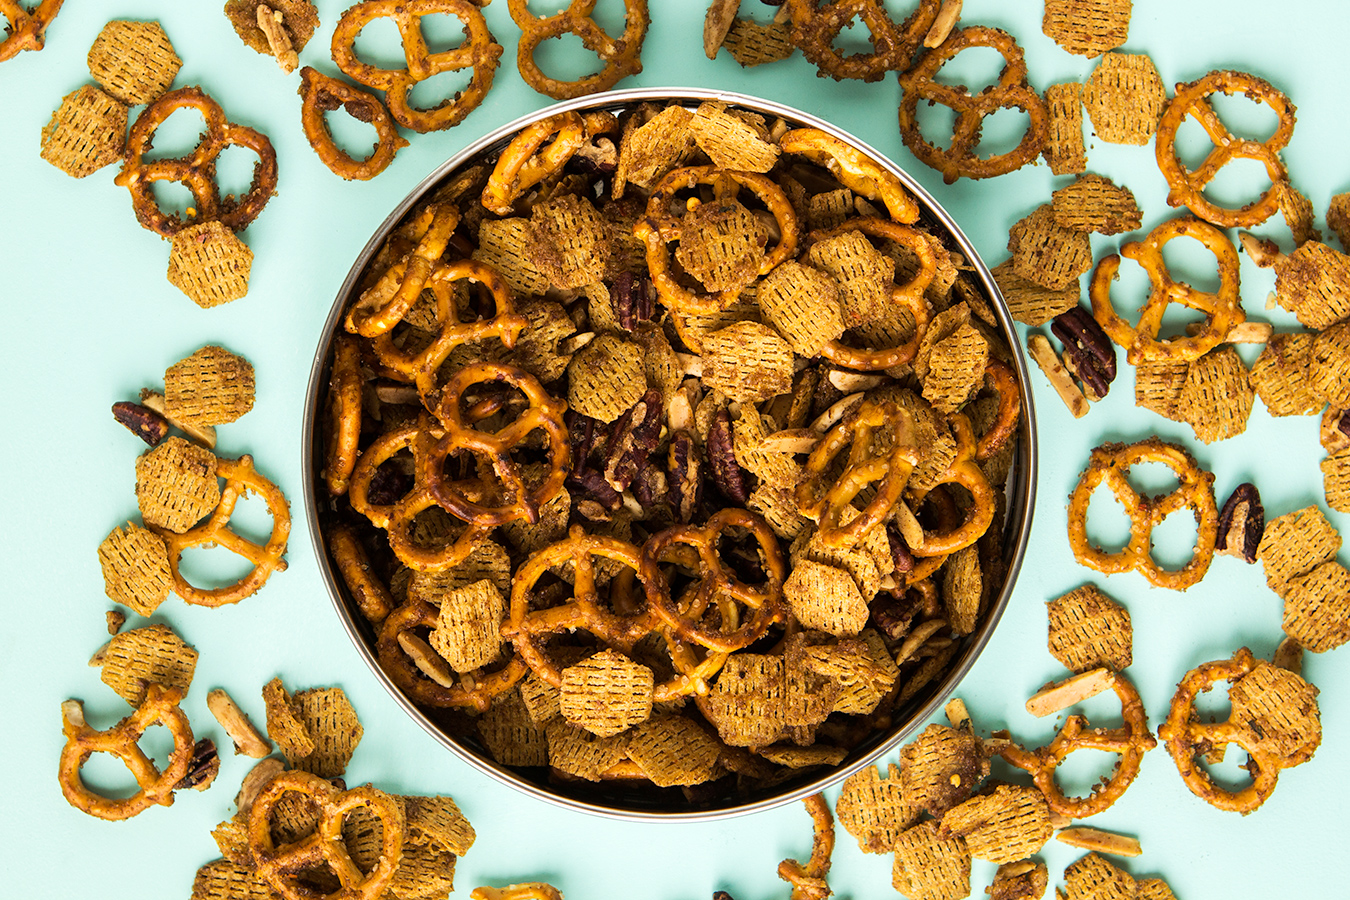 This sweet and spicy snack mix makes the perfect homemade gift for dad for Father's Day. Click through for video recipe and printable labels.